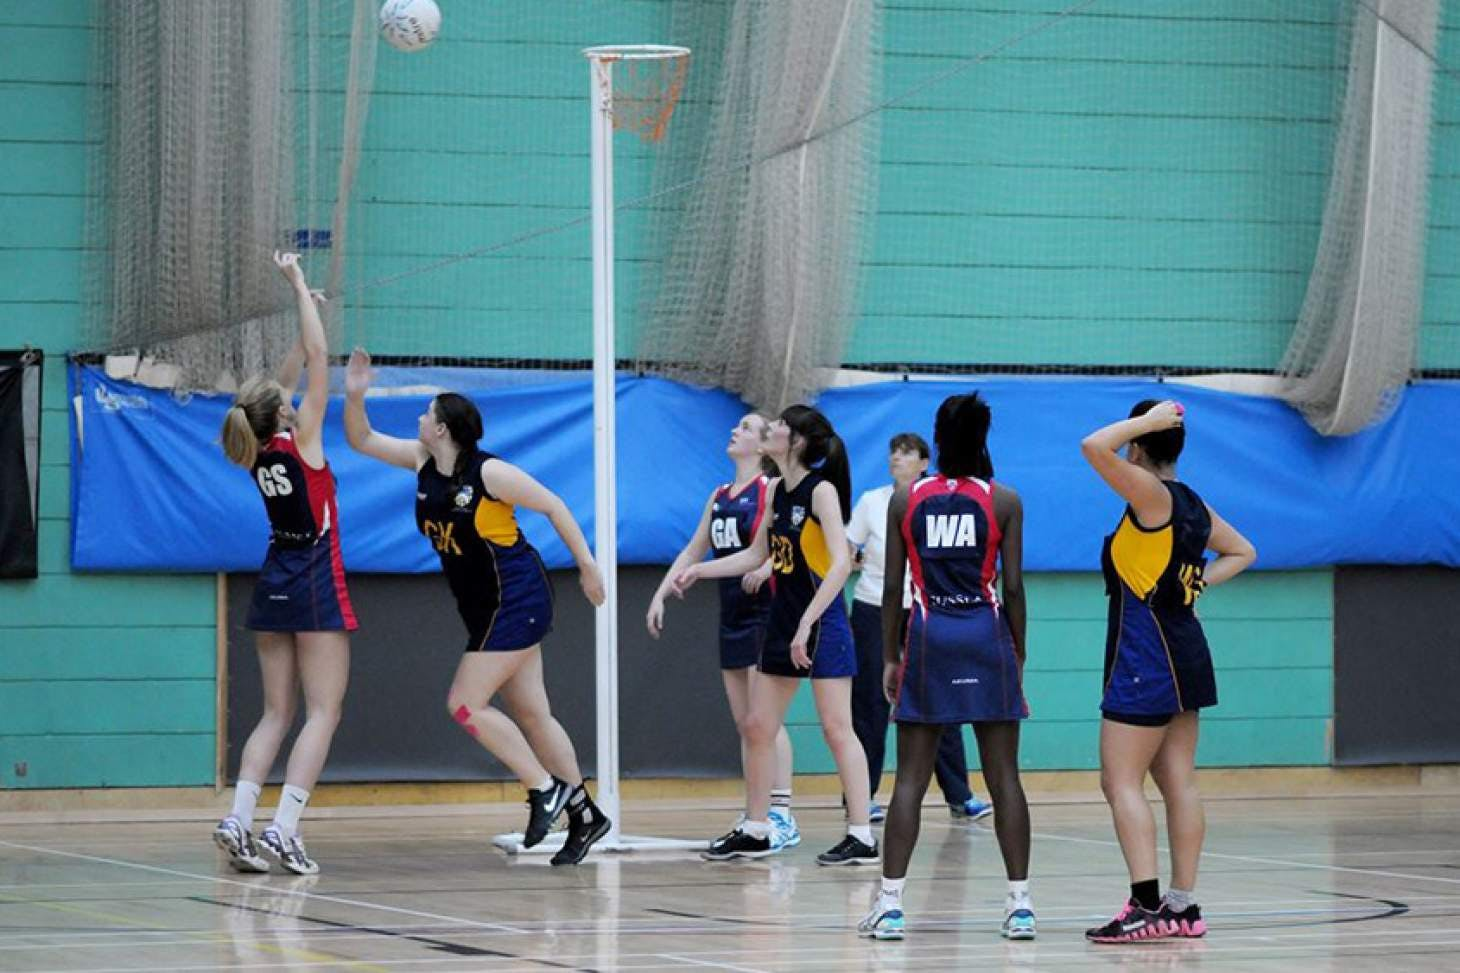 University Of Sussex Sport Centre Indoor netball court